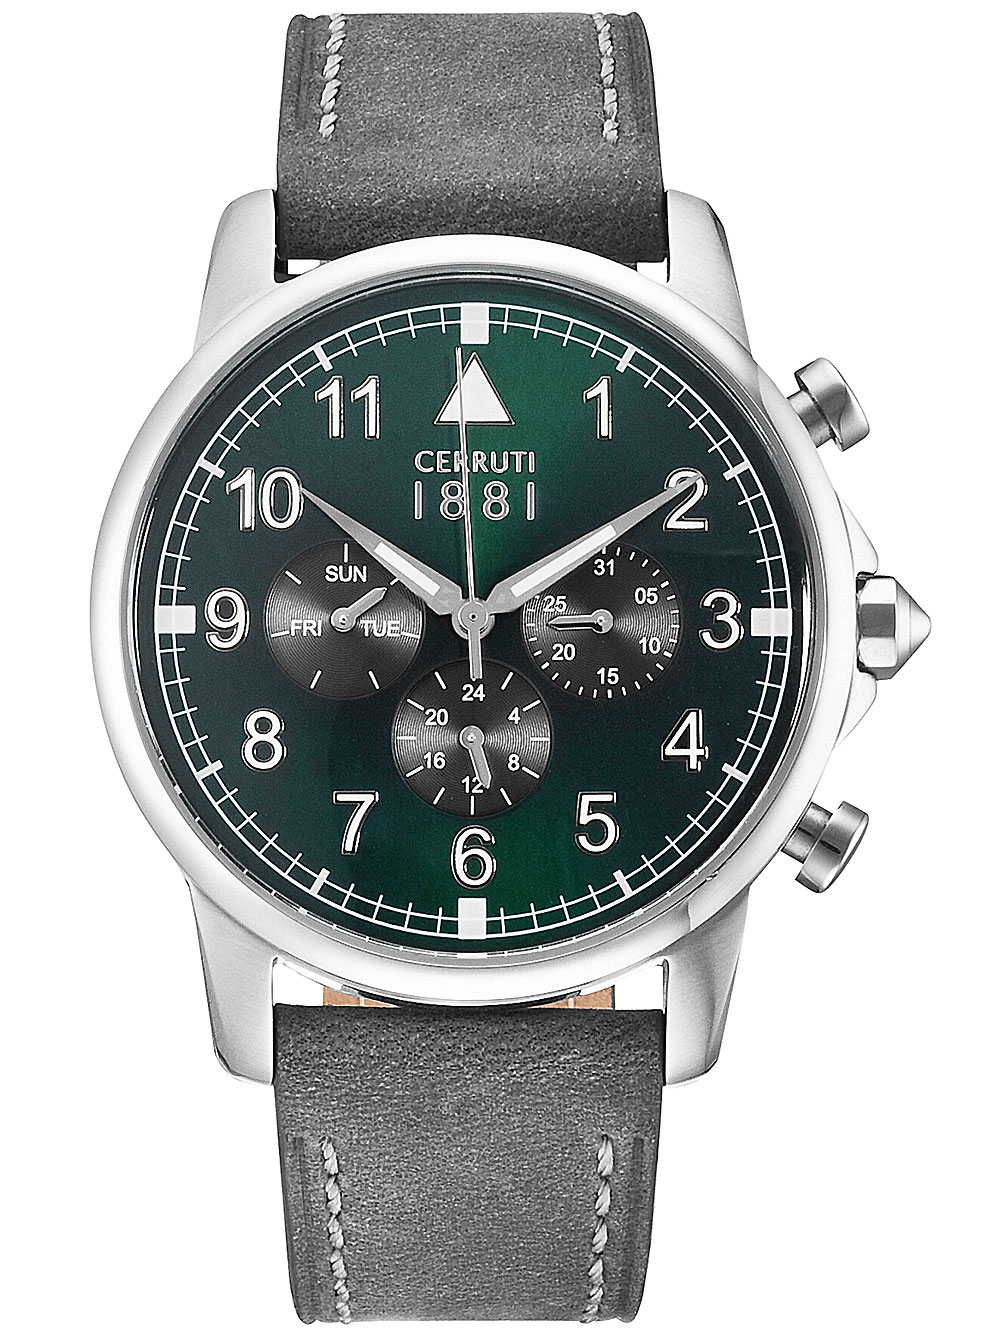 Image of Cerruti CRA081SN19GY Terra Chronograph 43mm 5ATM